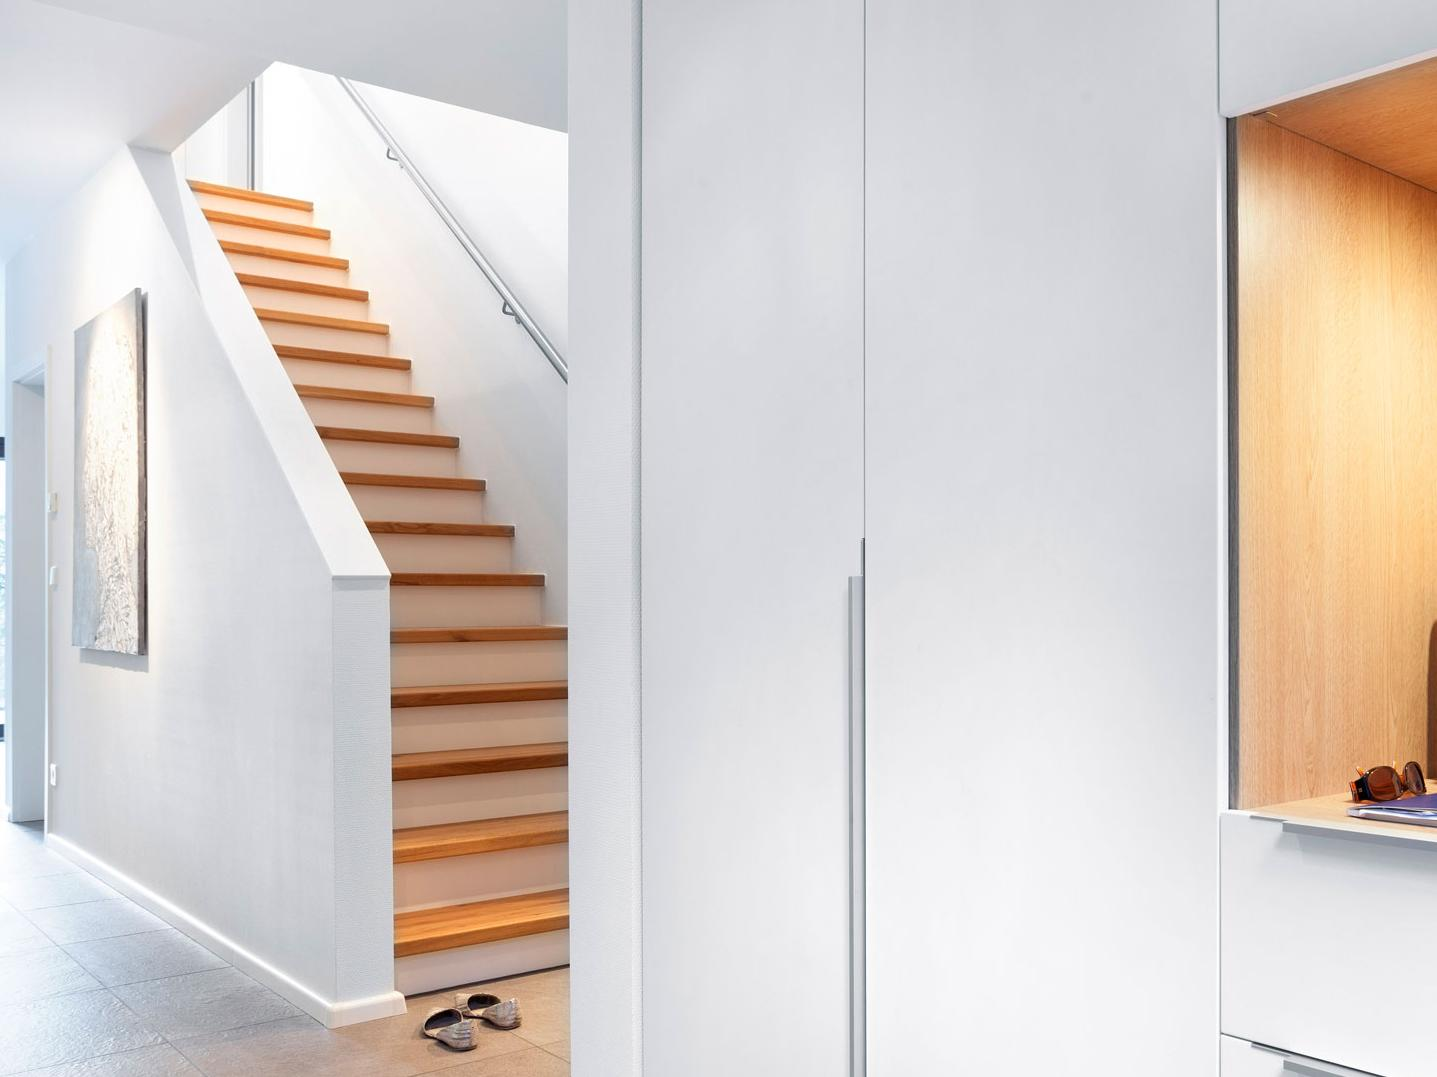 Stair Forms - Straight staircase with a simple handrail